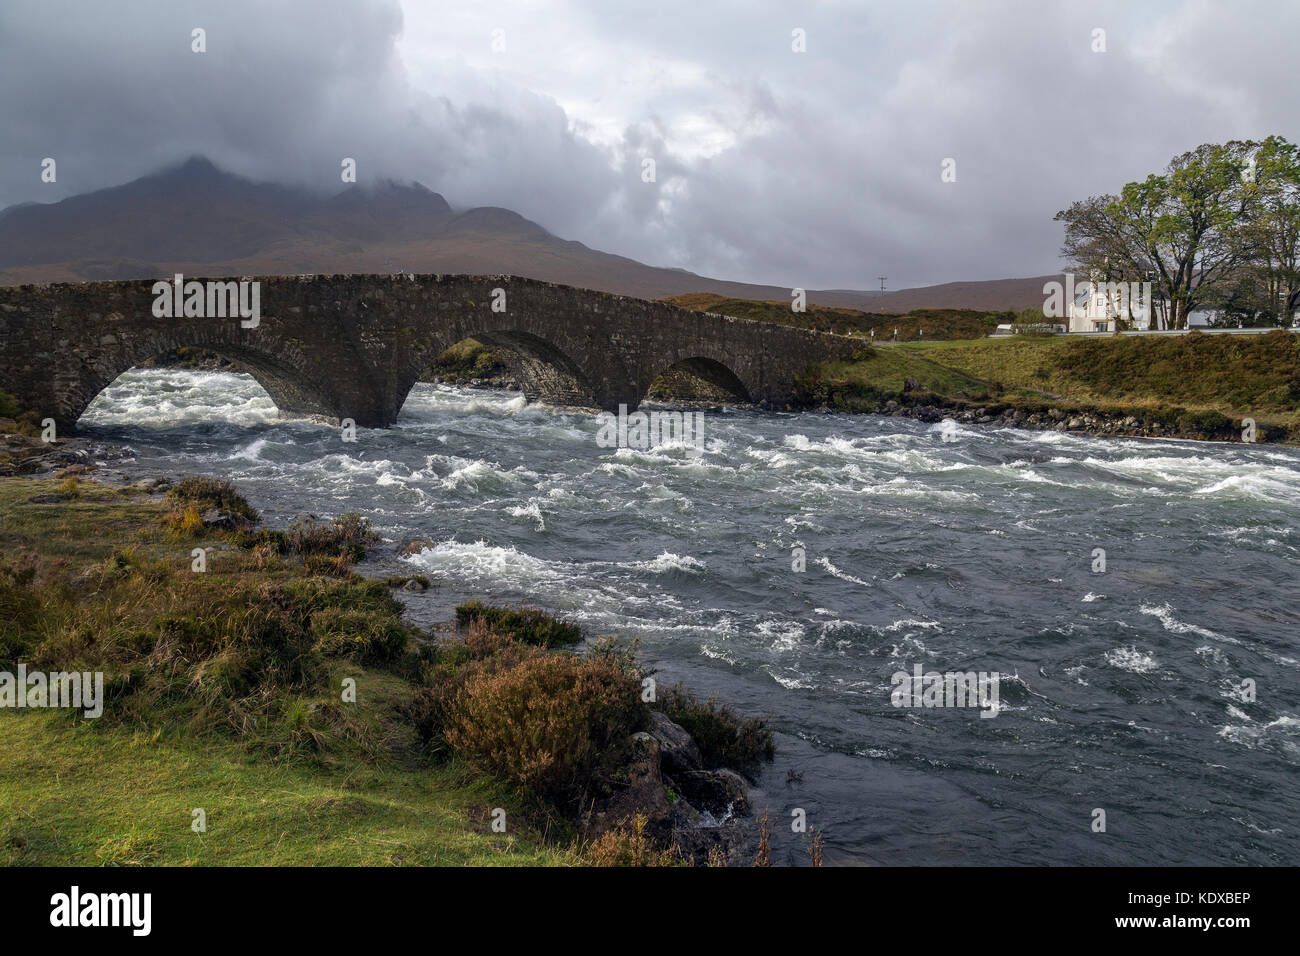 The old bridge at Sligachan on the Isle of Skye in the Cuillin Hills in the Inner Hebrides of northwest Scotland. - Stock Image